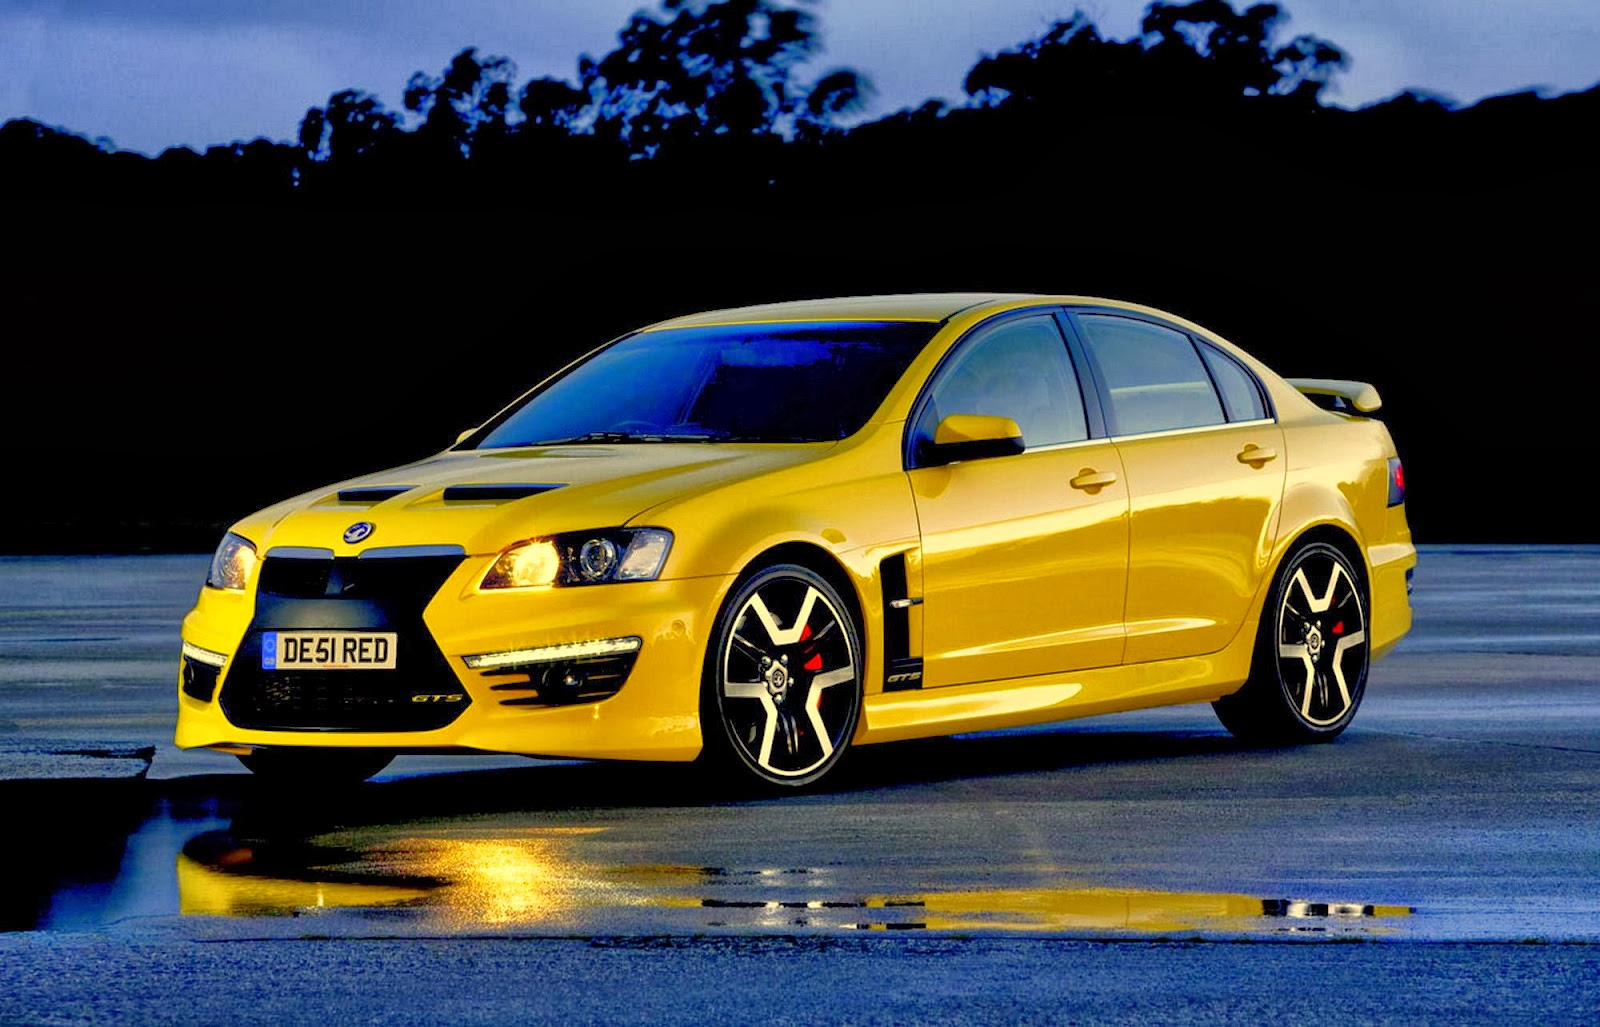 chevy ss wallpaper - photo #17